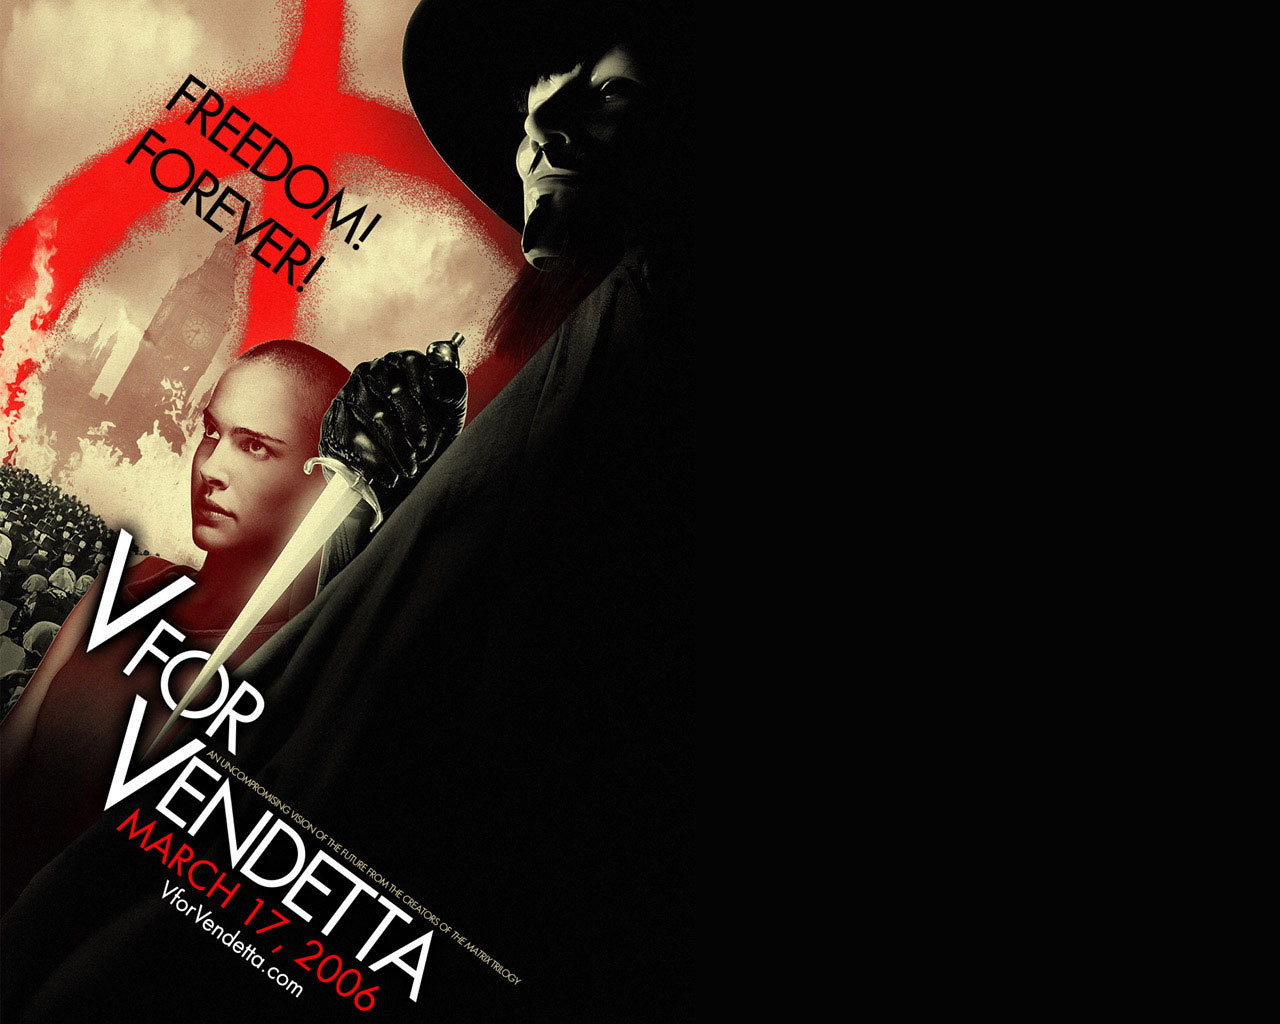 22332 download wallpaper Cinema, V For Vendetta screensavers and pictures for free